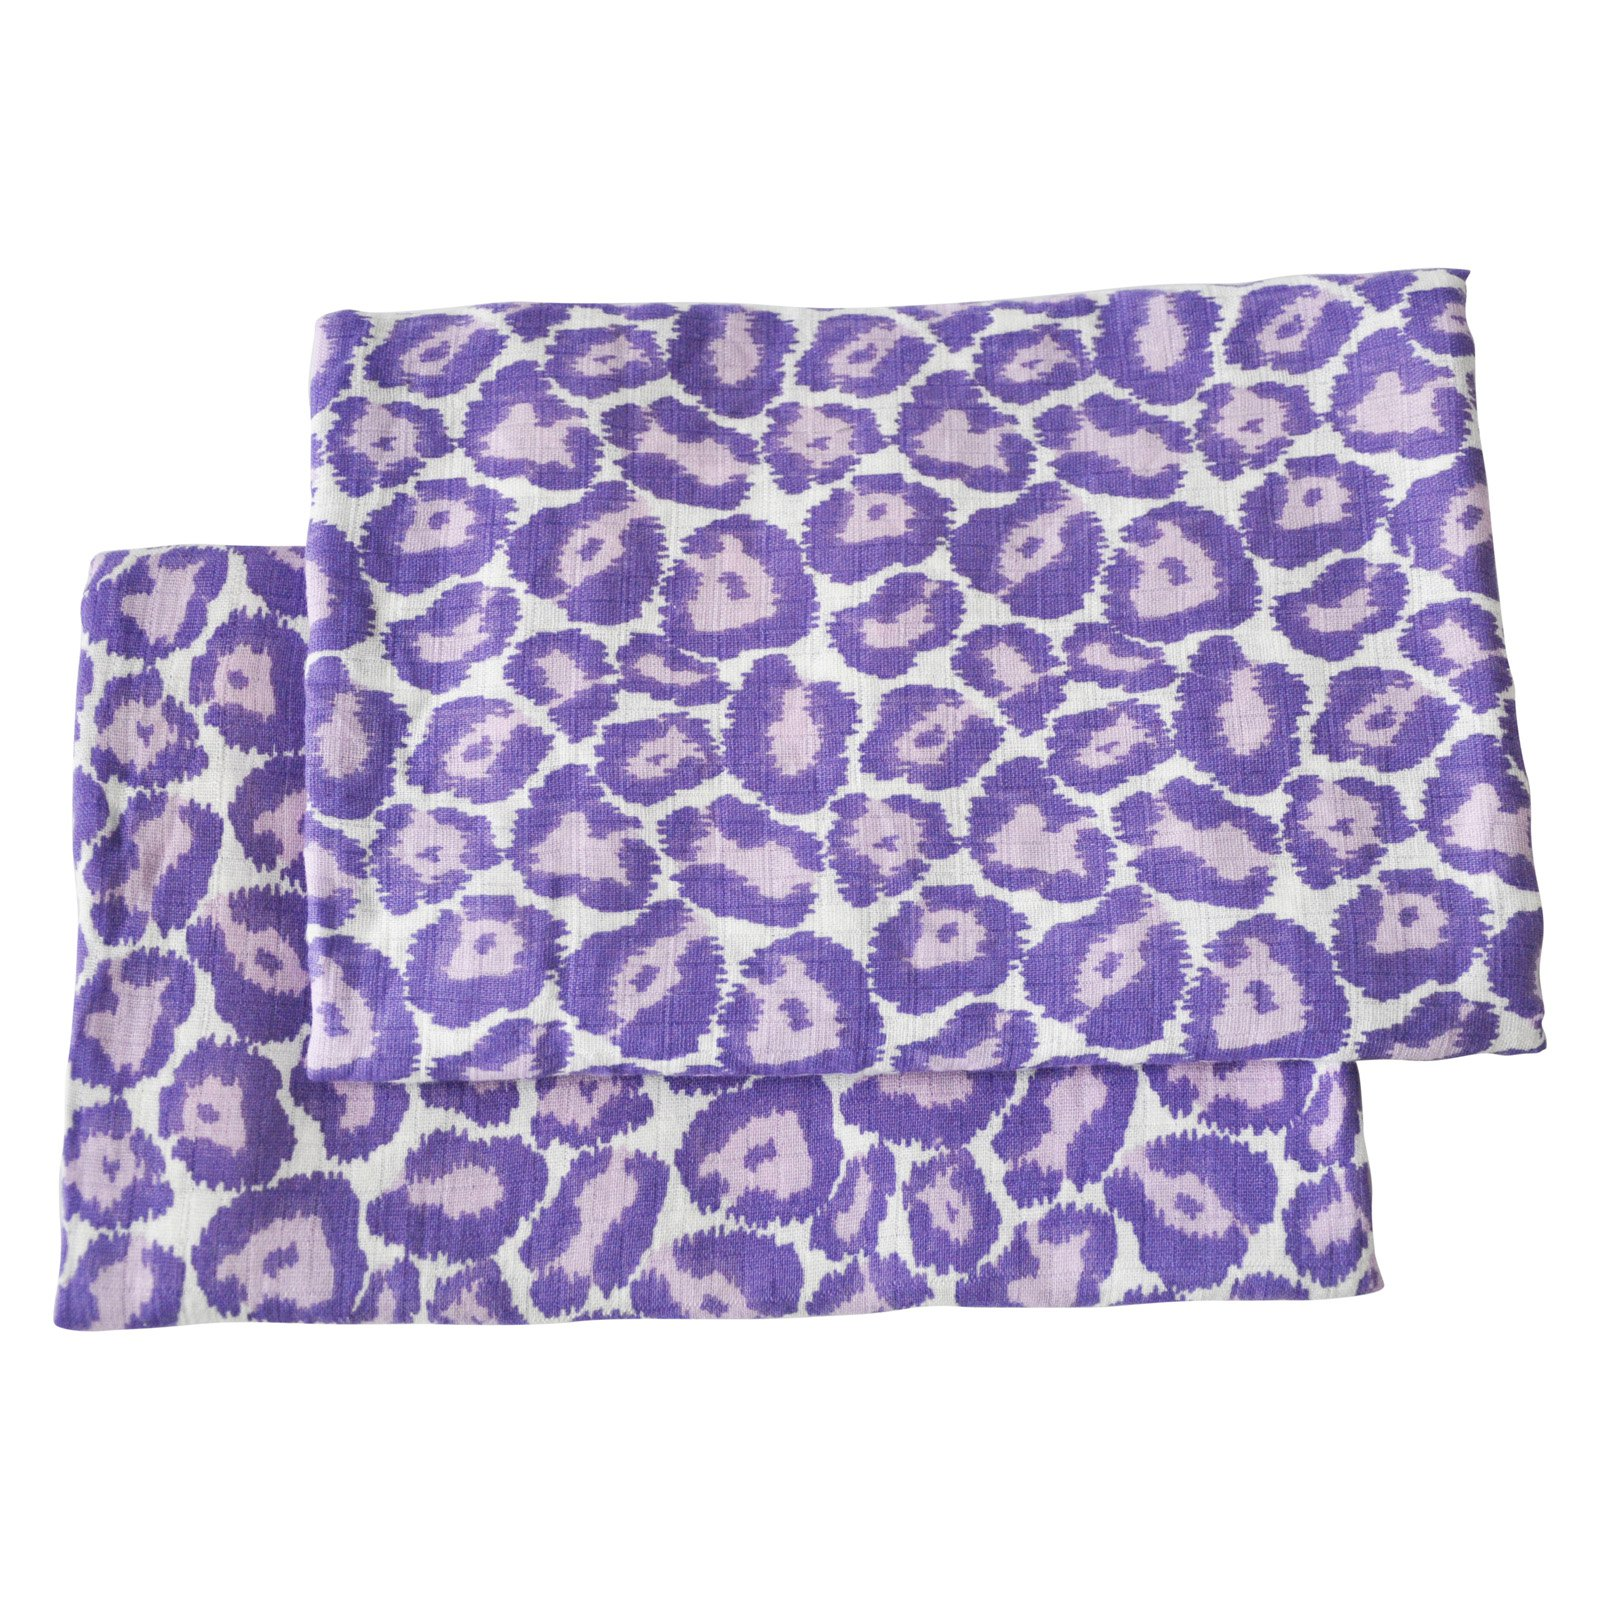 Bacati Ikat Leopard 2 Piece Muslin Crib Sheet Set